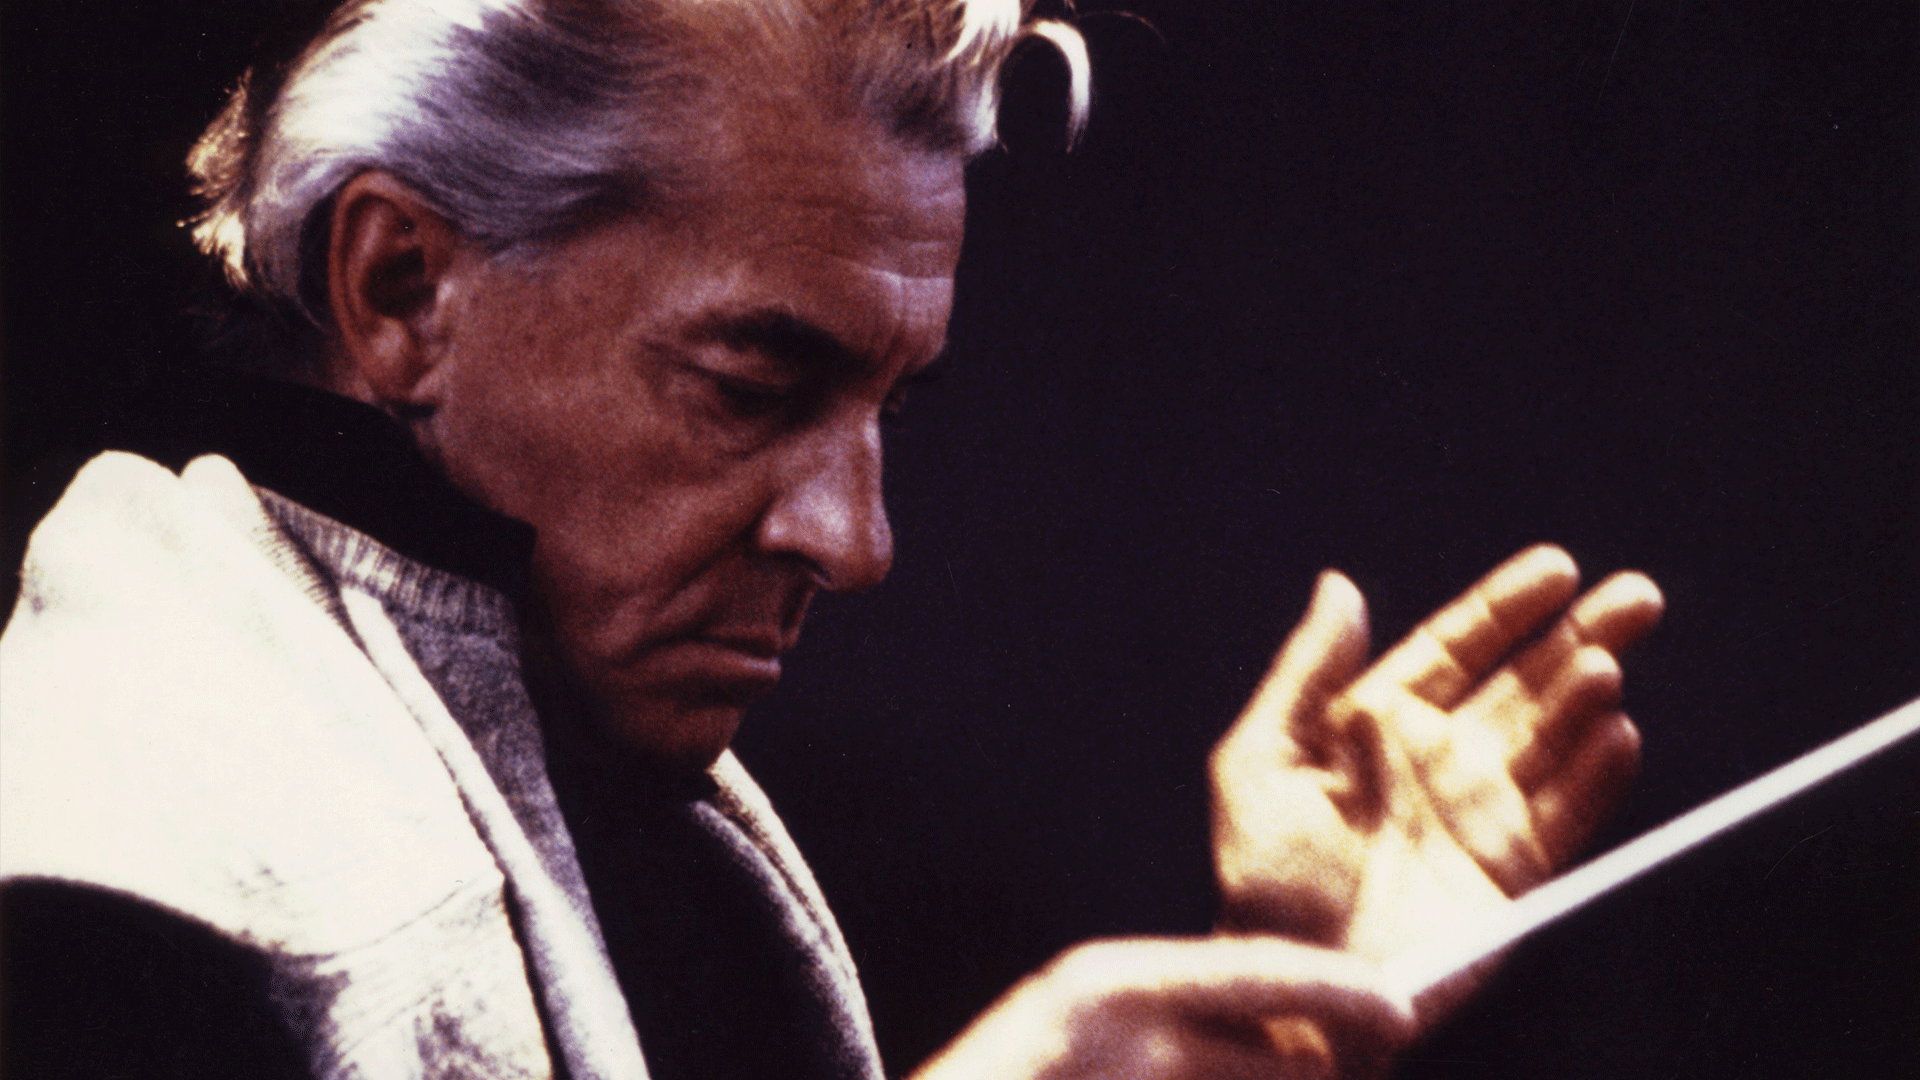 Herbert von Karajan conducts Strauss's Don Quixote